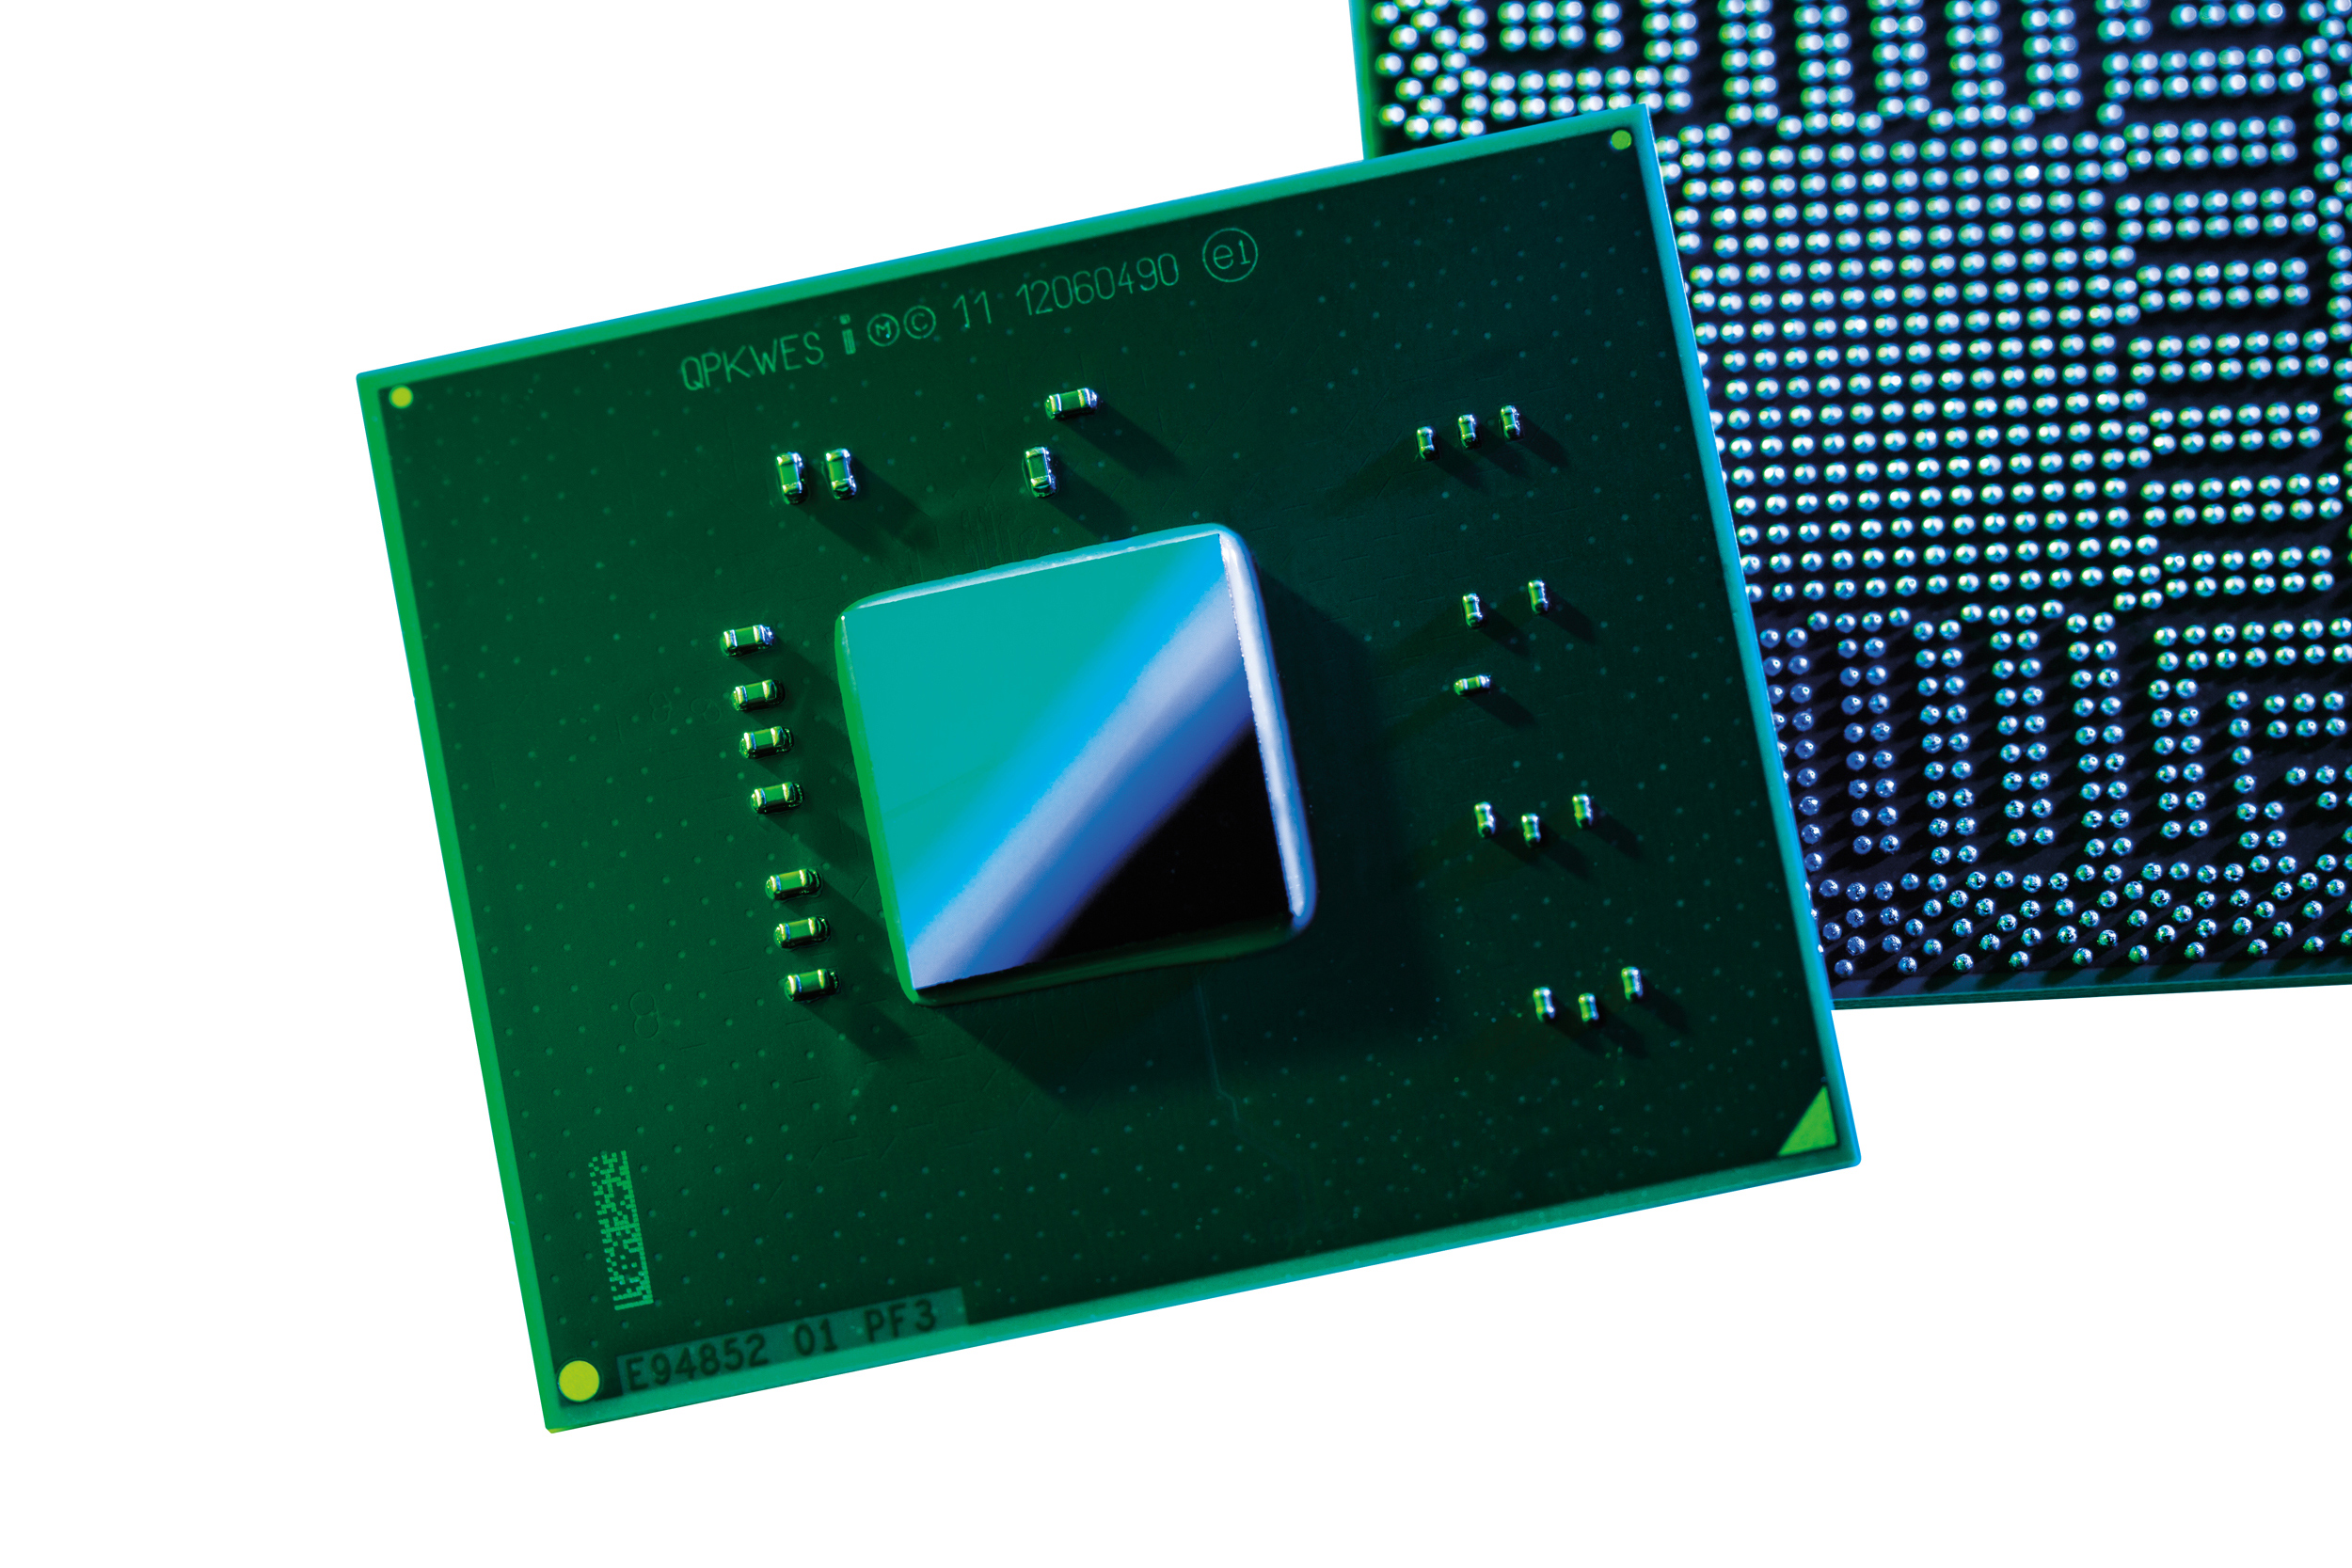 """Intel Launches """"Centerton"""" Atom S1200 Family, First Atom For Servers"""